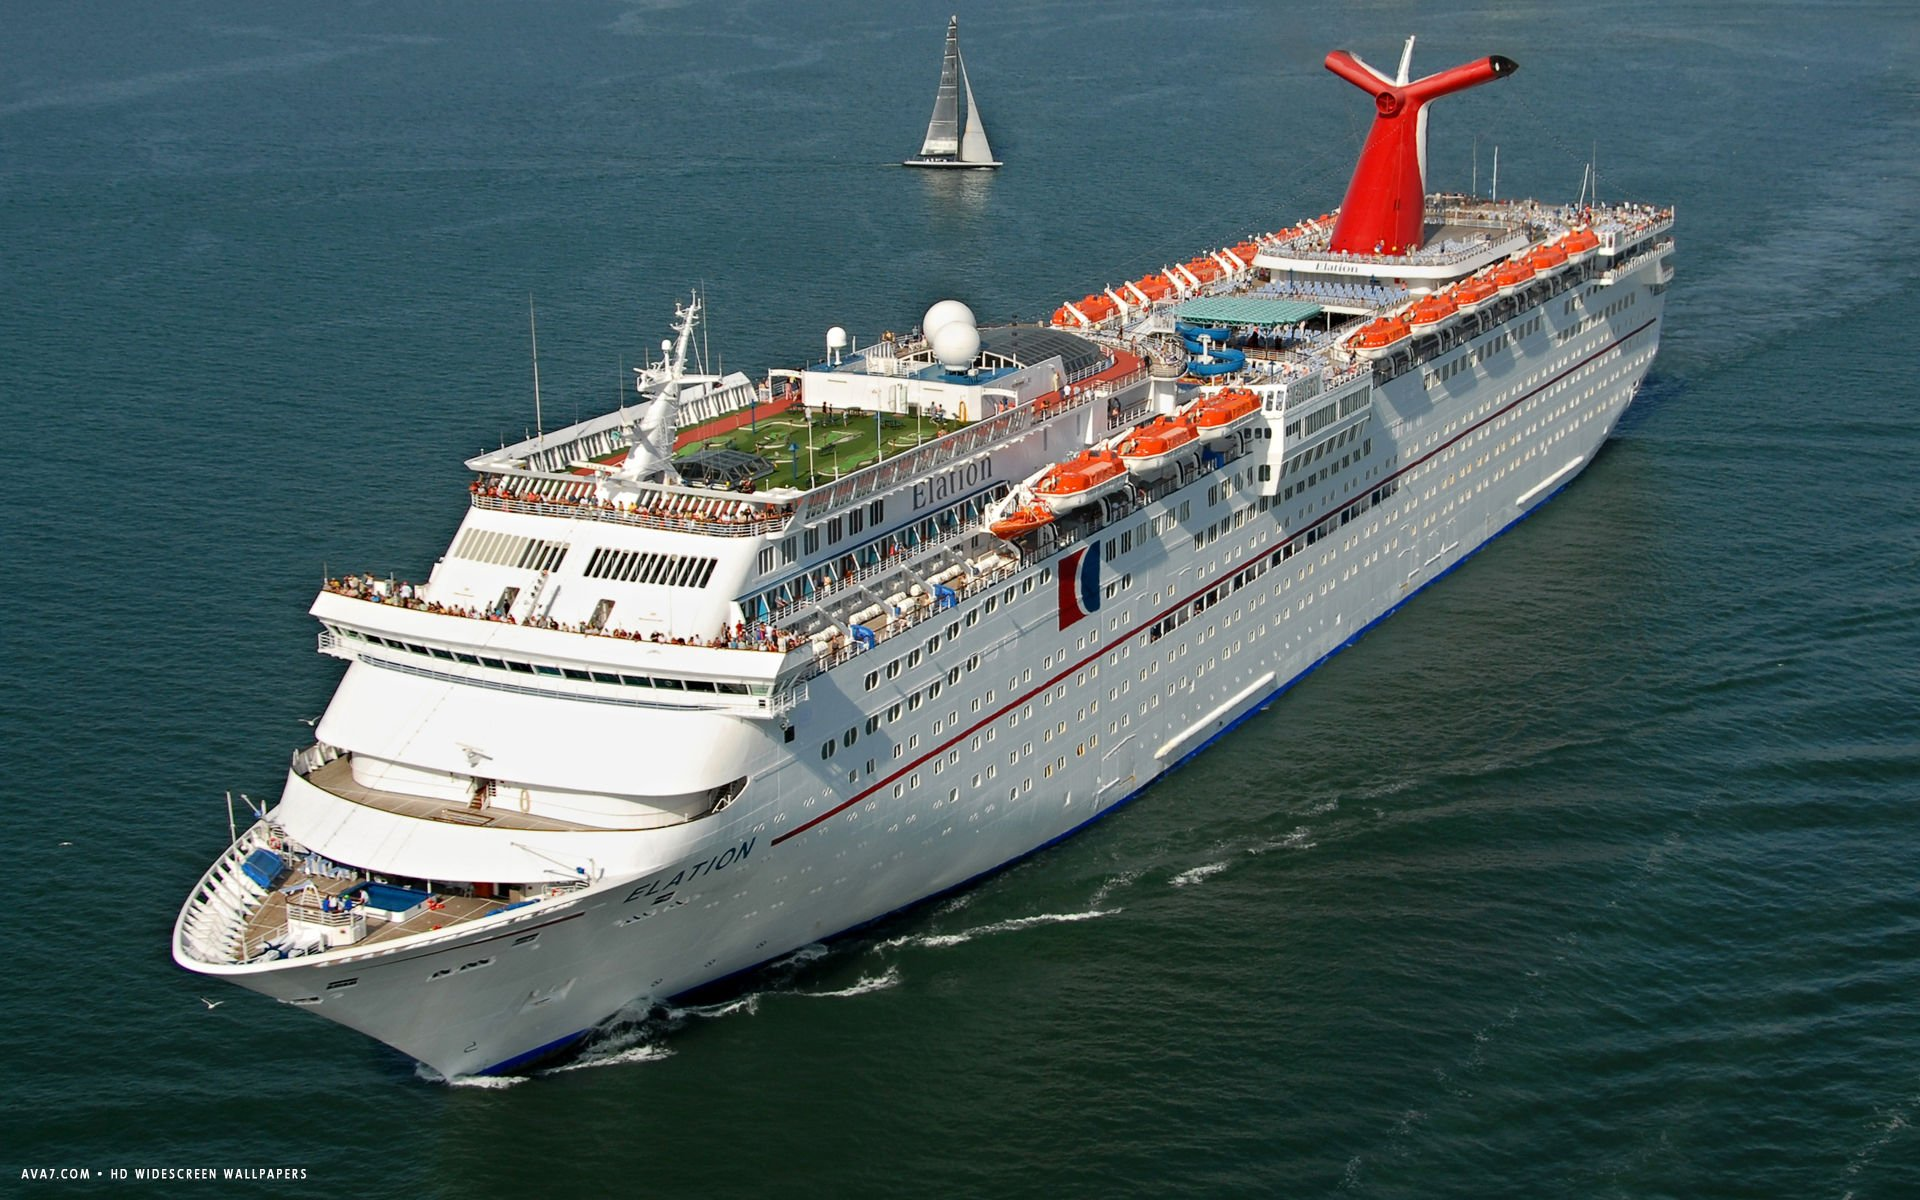 carnival elation cruise ship hd widescreen wallpaper cruise ships 1920x1200